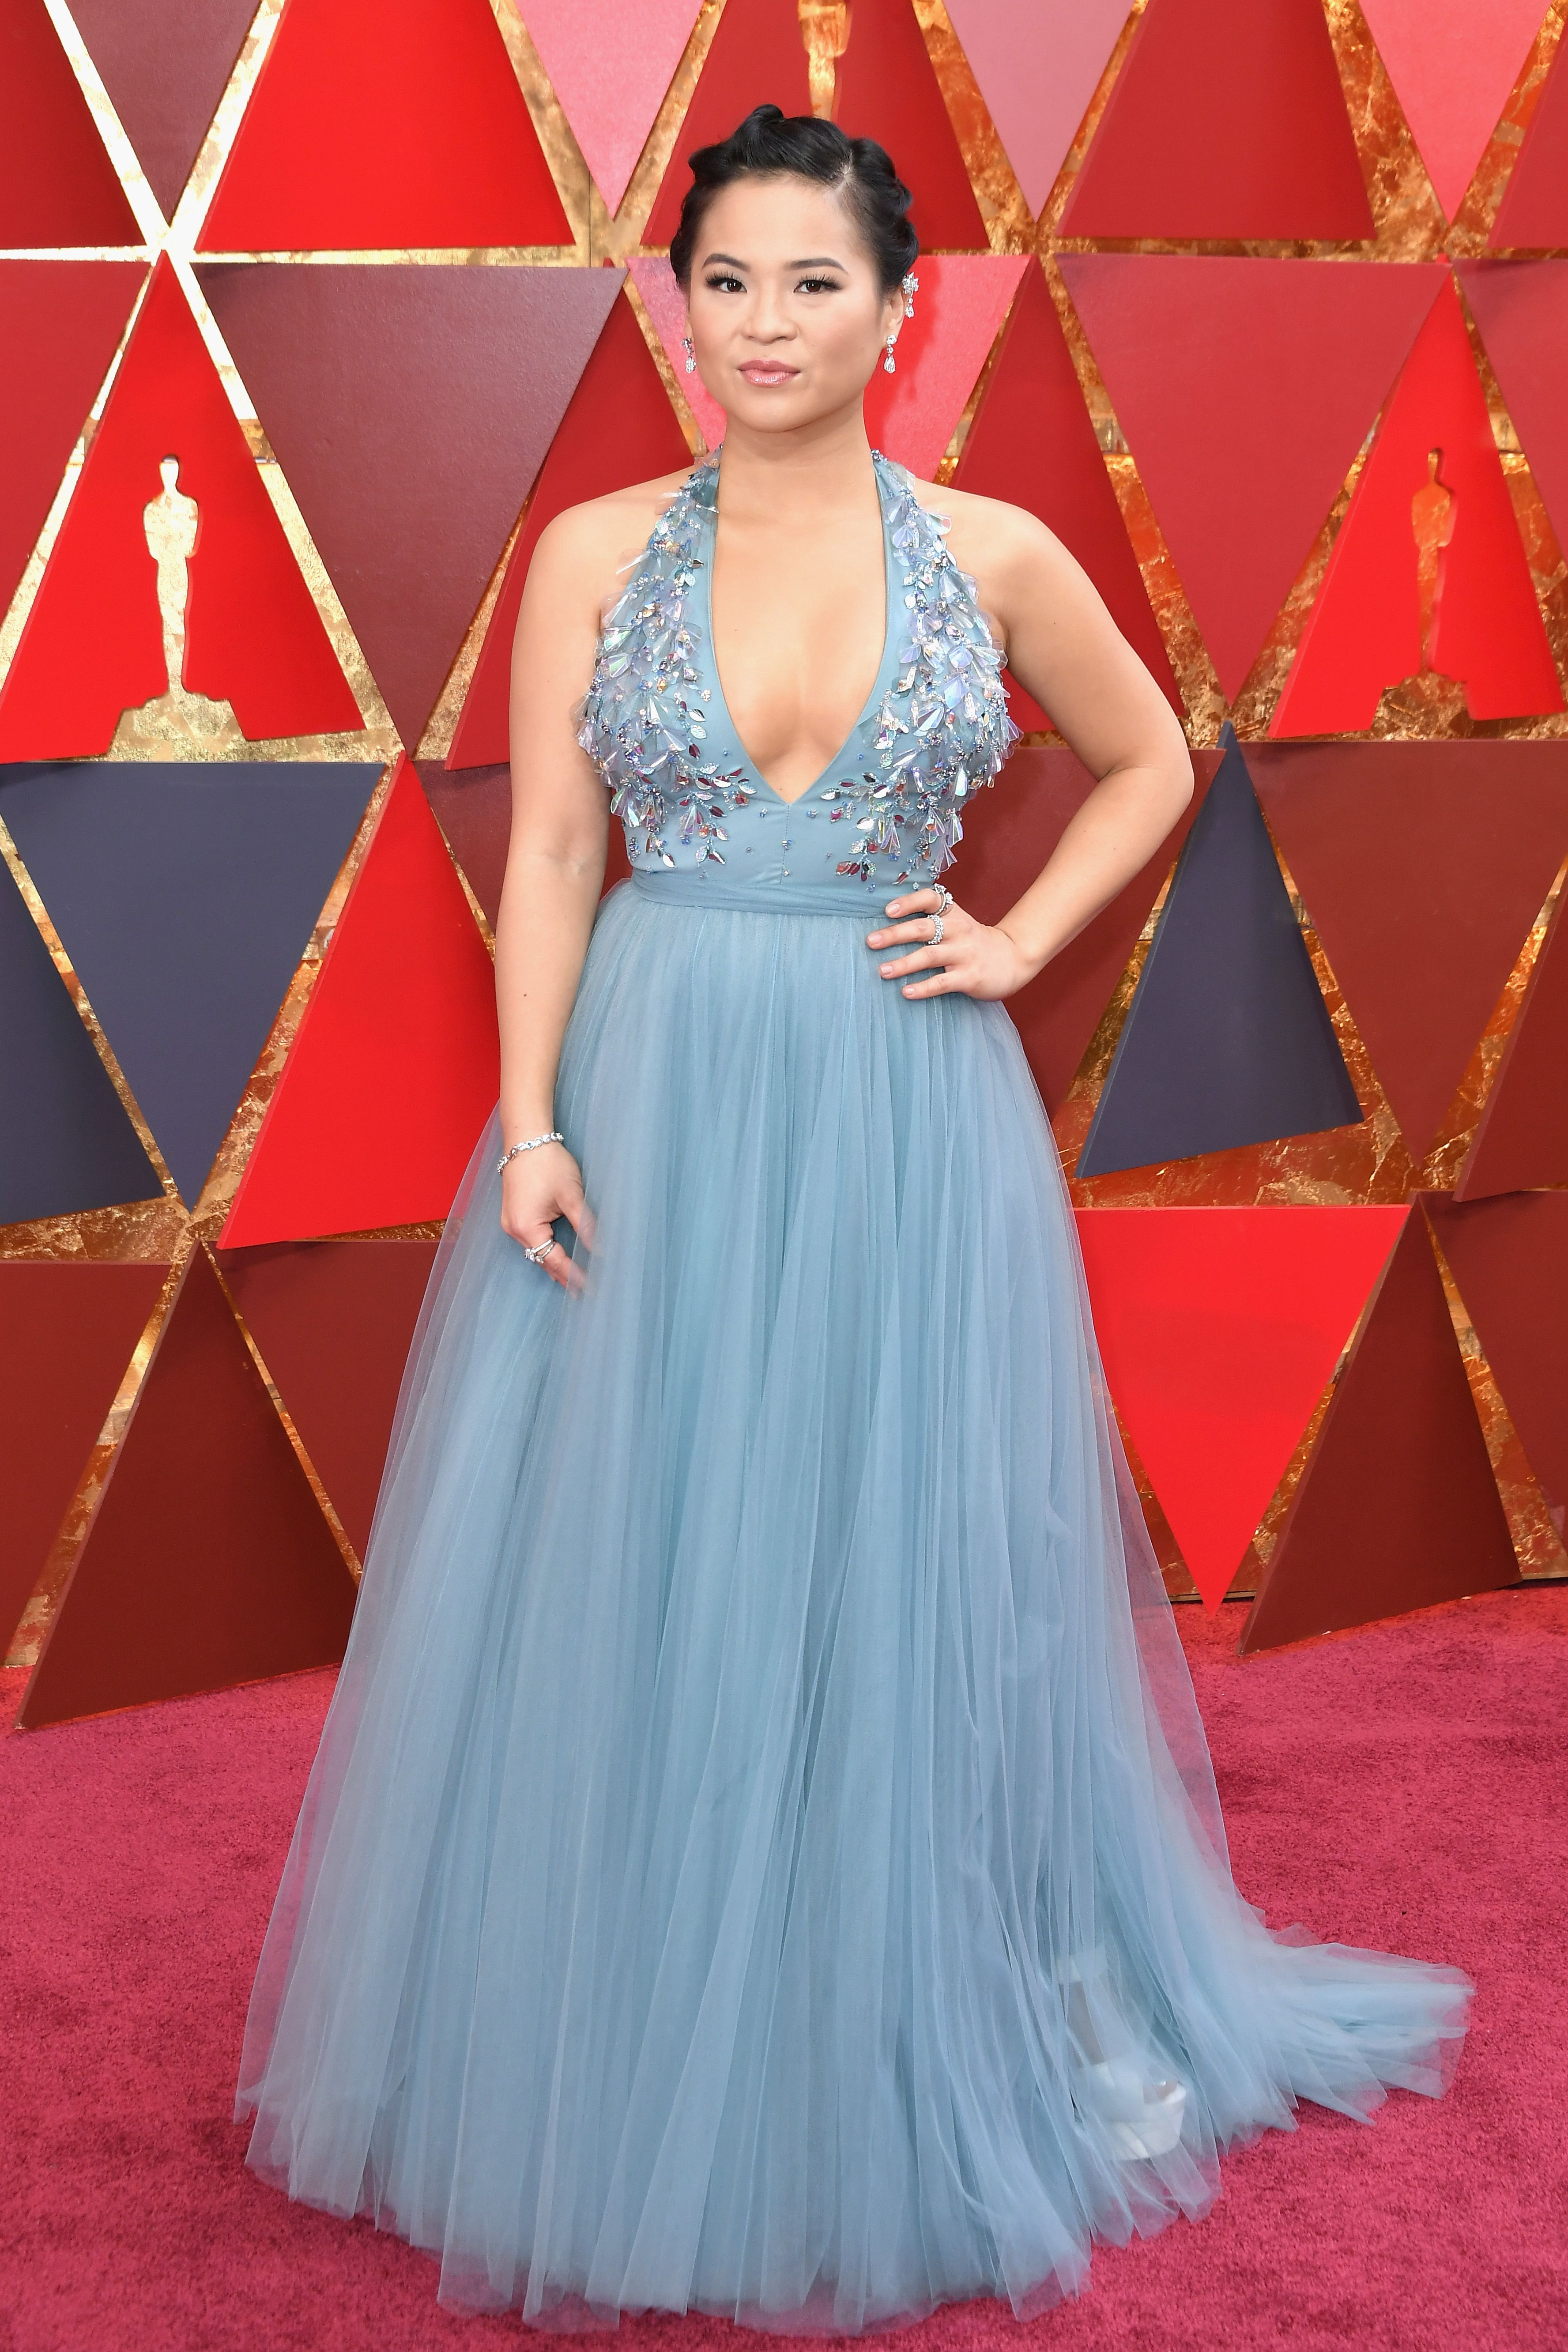 All Oscars 2018 Red Carpet Dresses - Every Academy Awards Celebrity Look